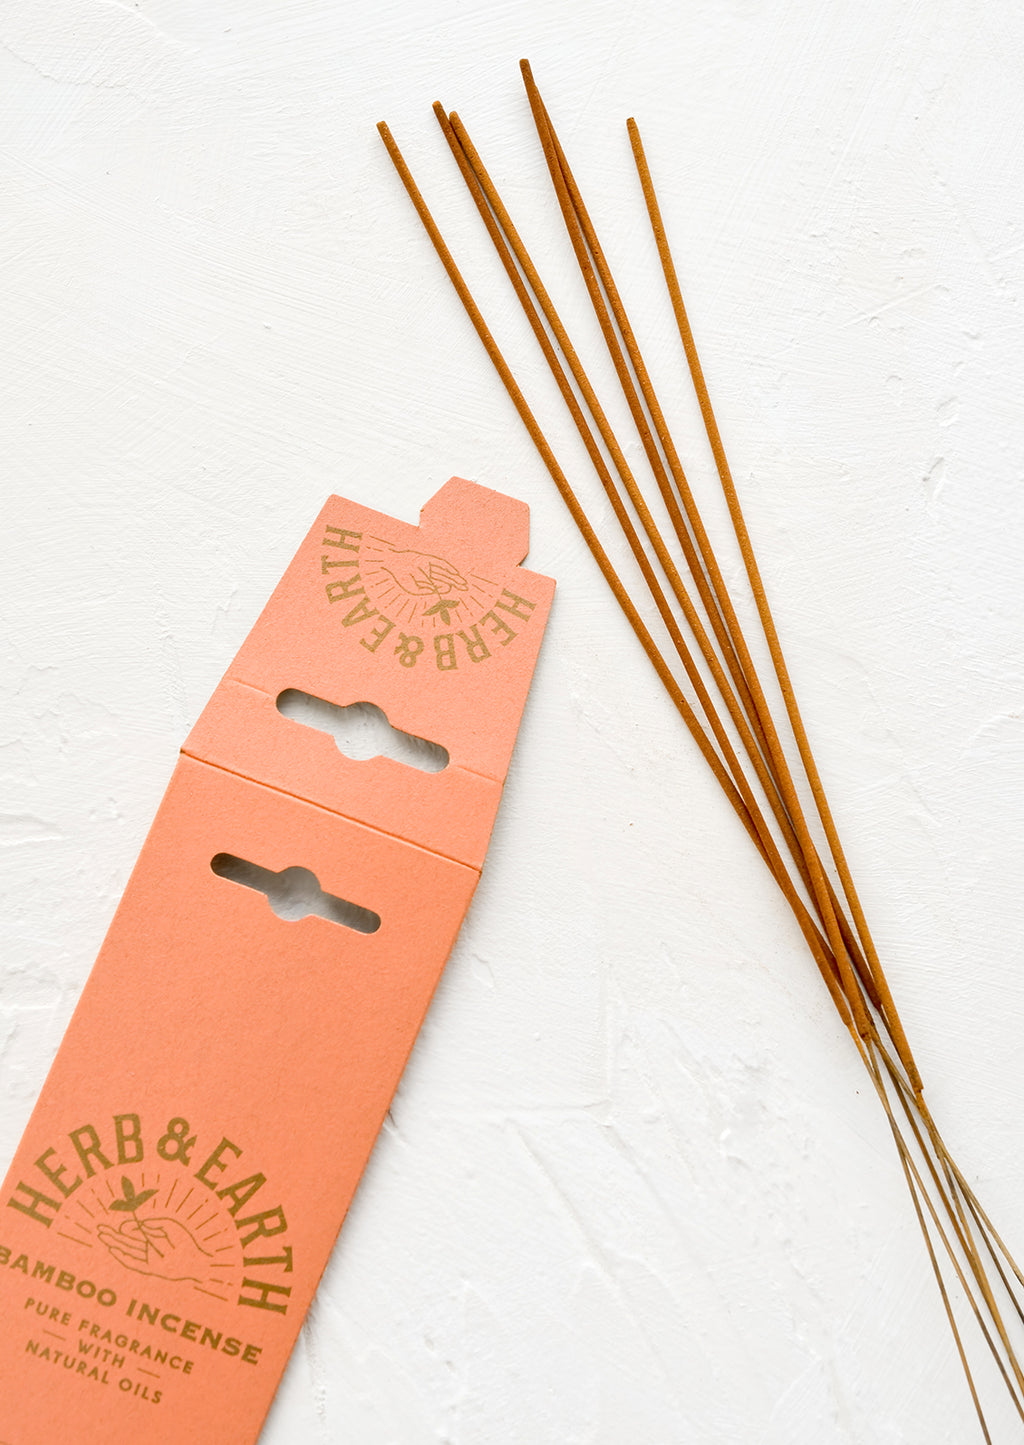 2: Long, skinny sticks of dipped incense on bamboo sticks.